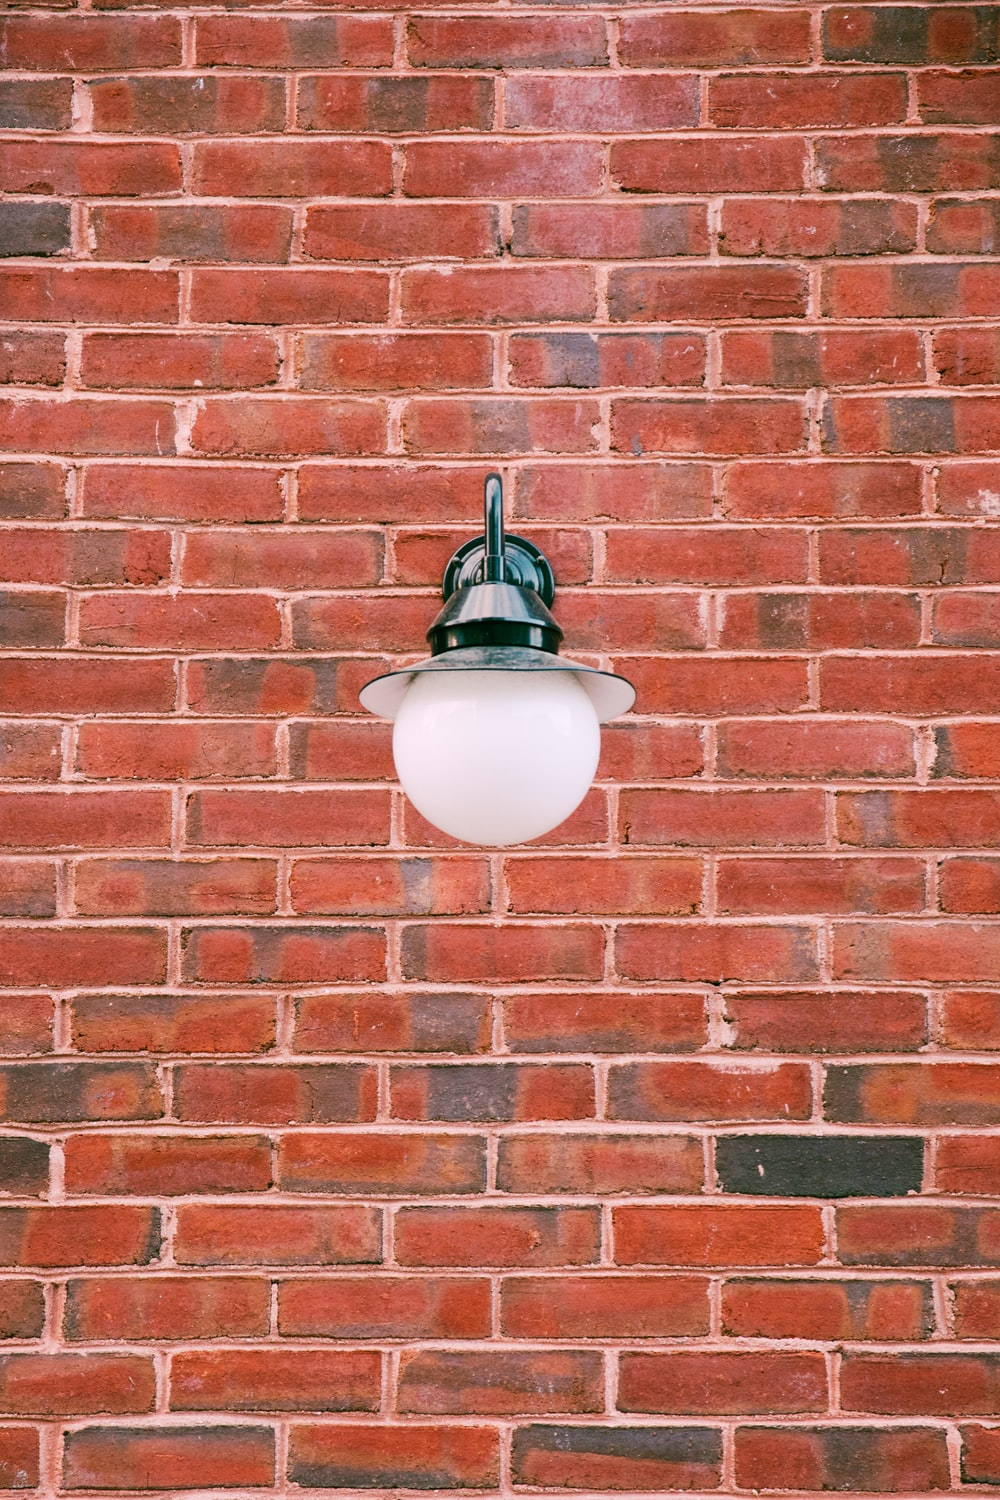 turned-off outdoor light on red bricked wall